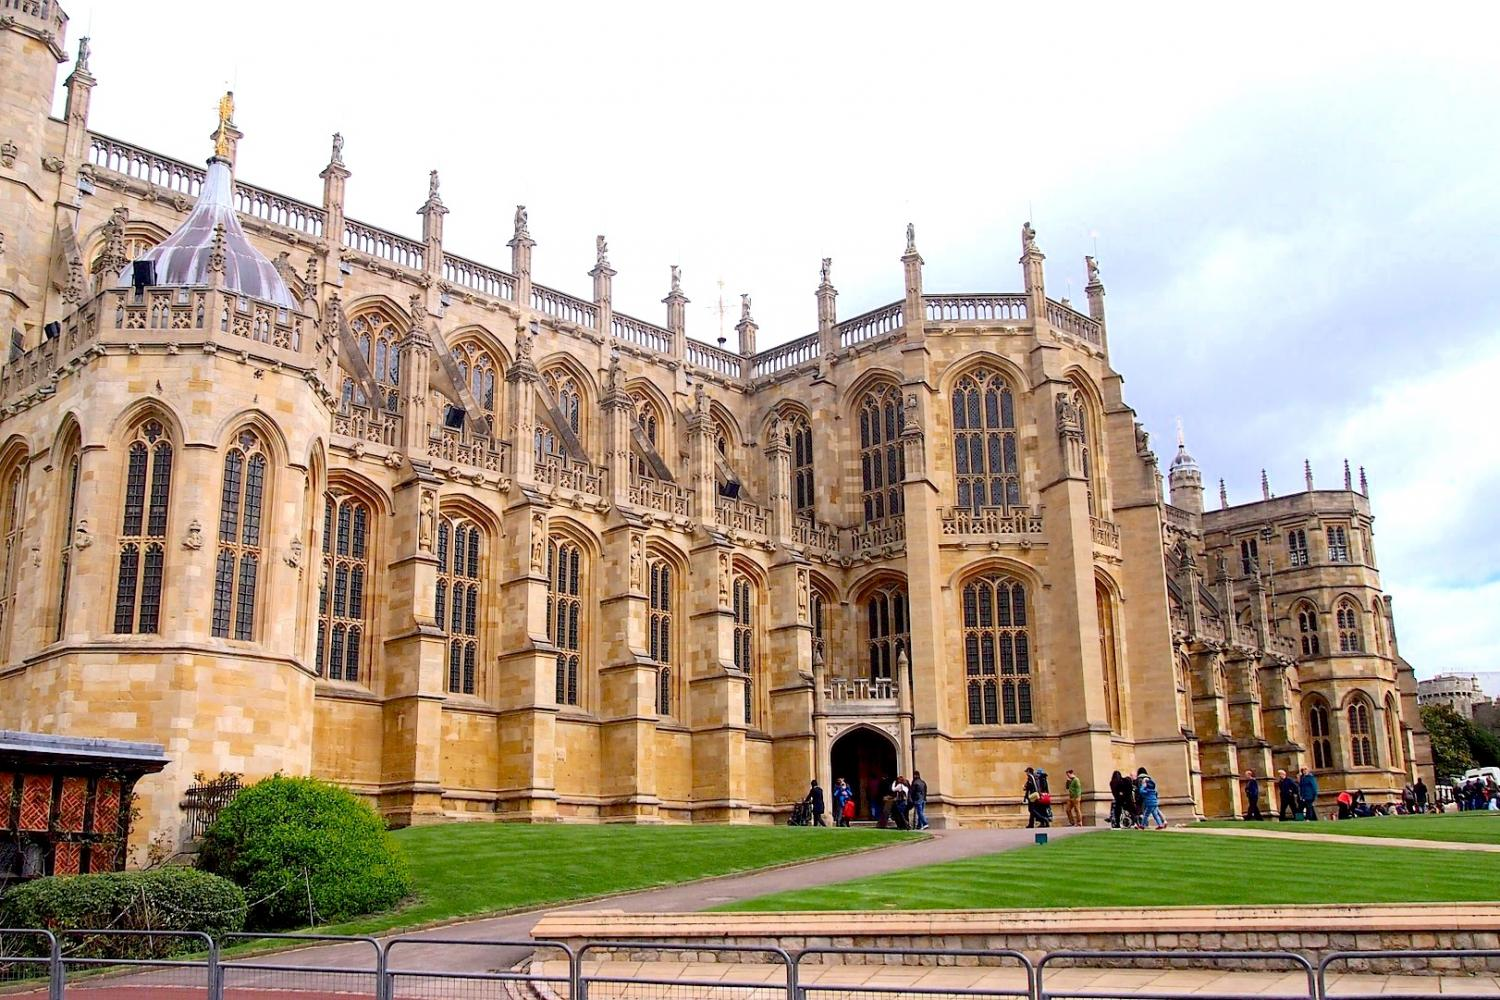 All-Inclusive Day Tour to Windsor, Stonehenge & Bath